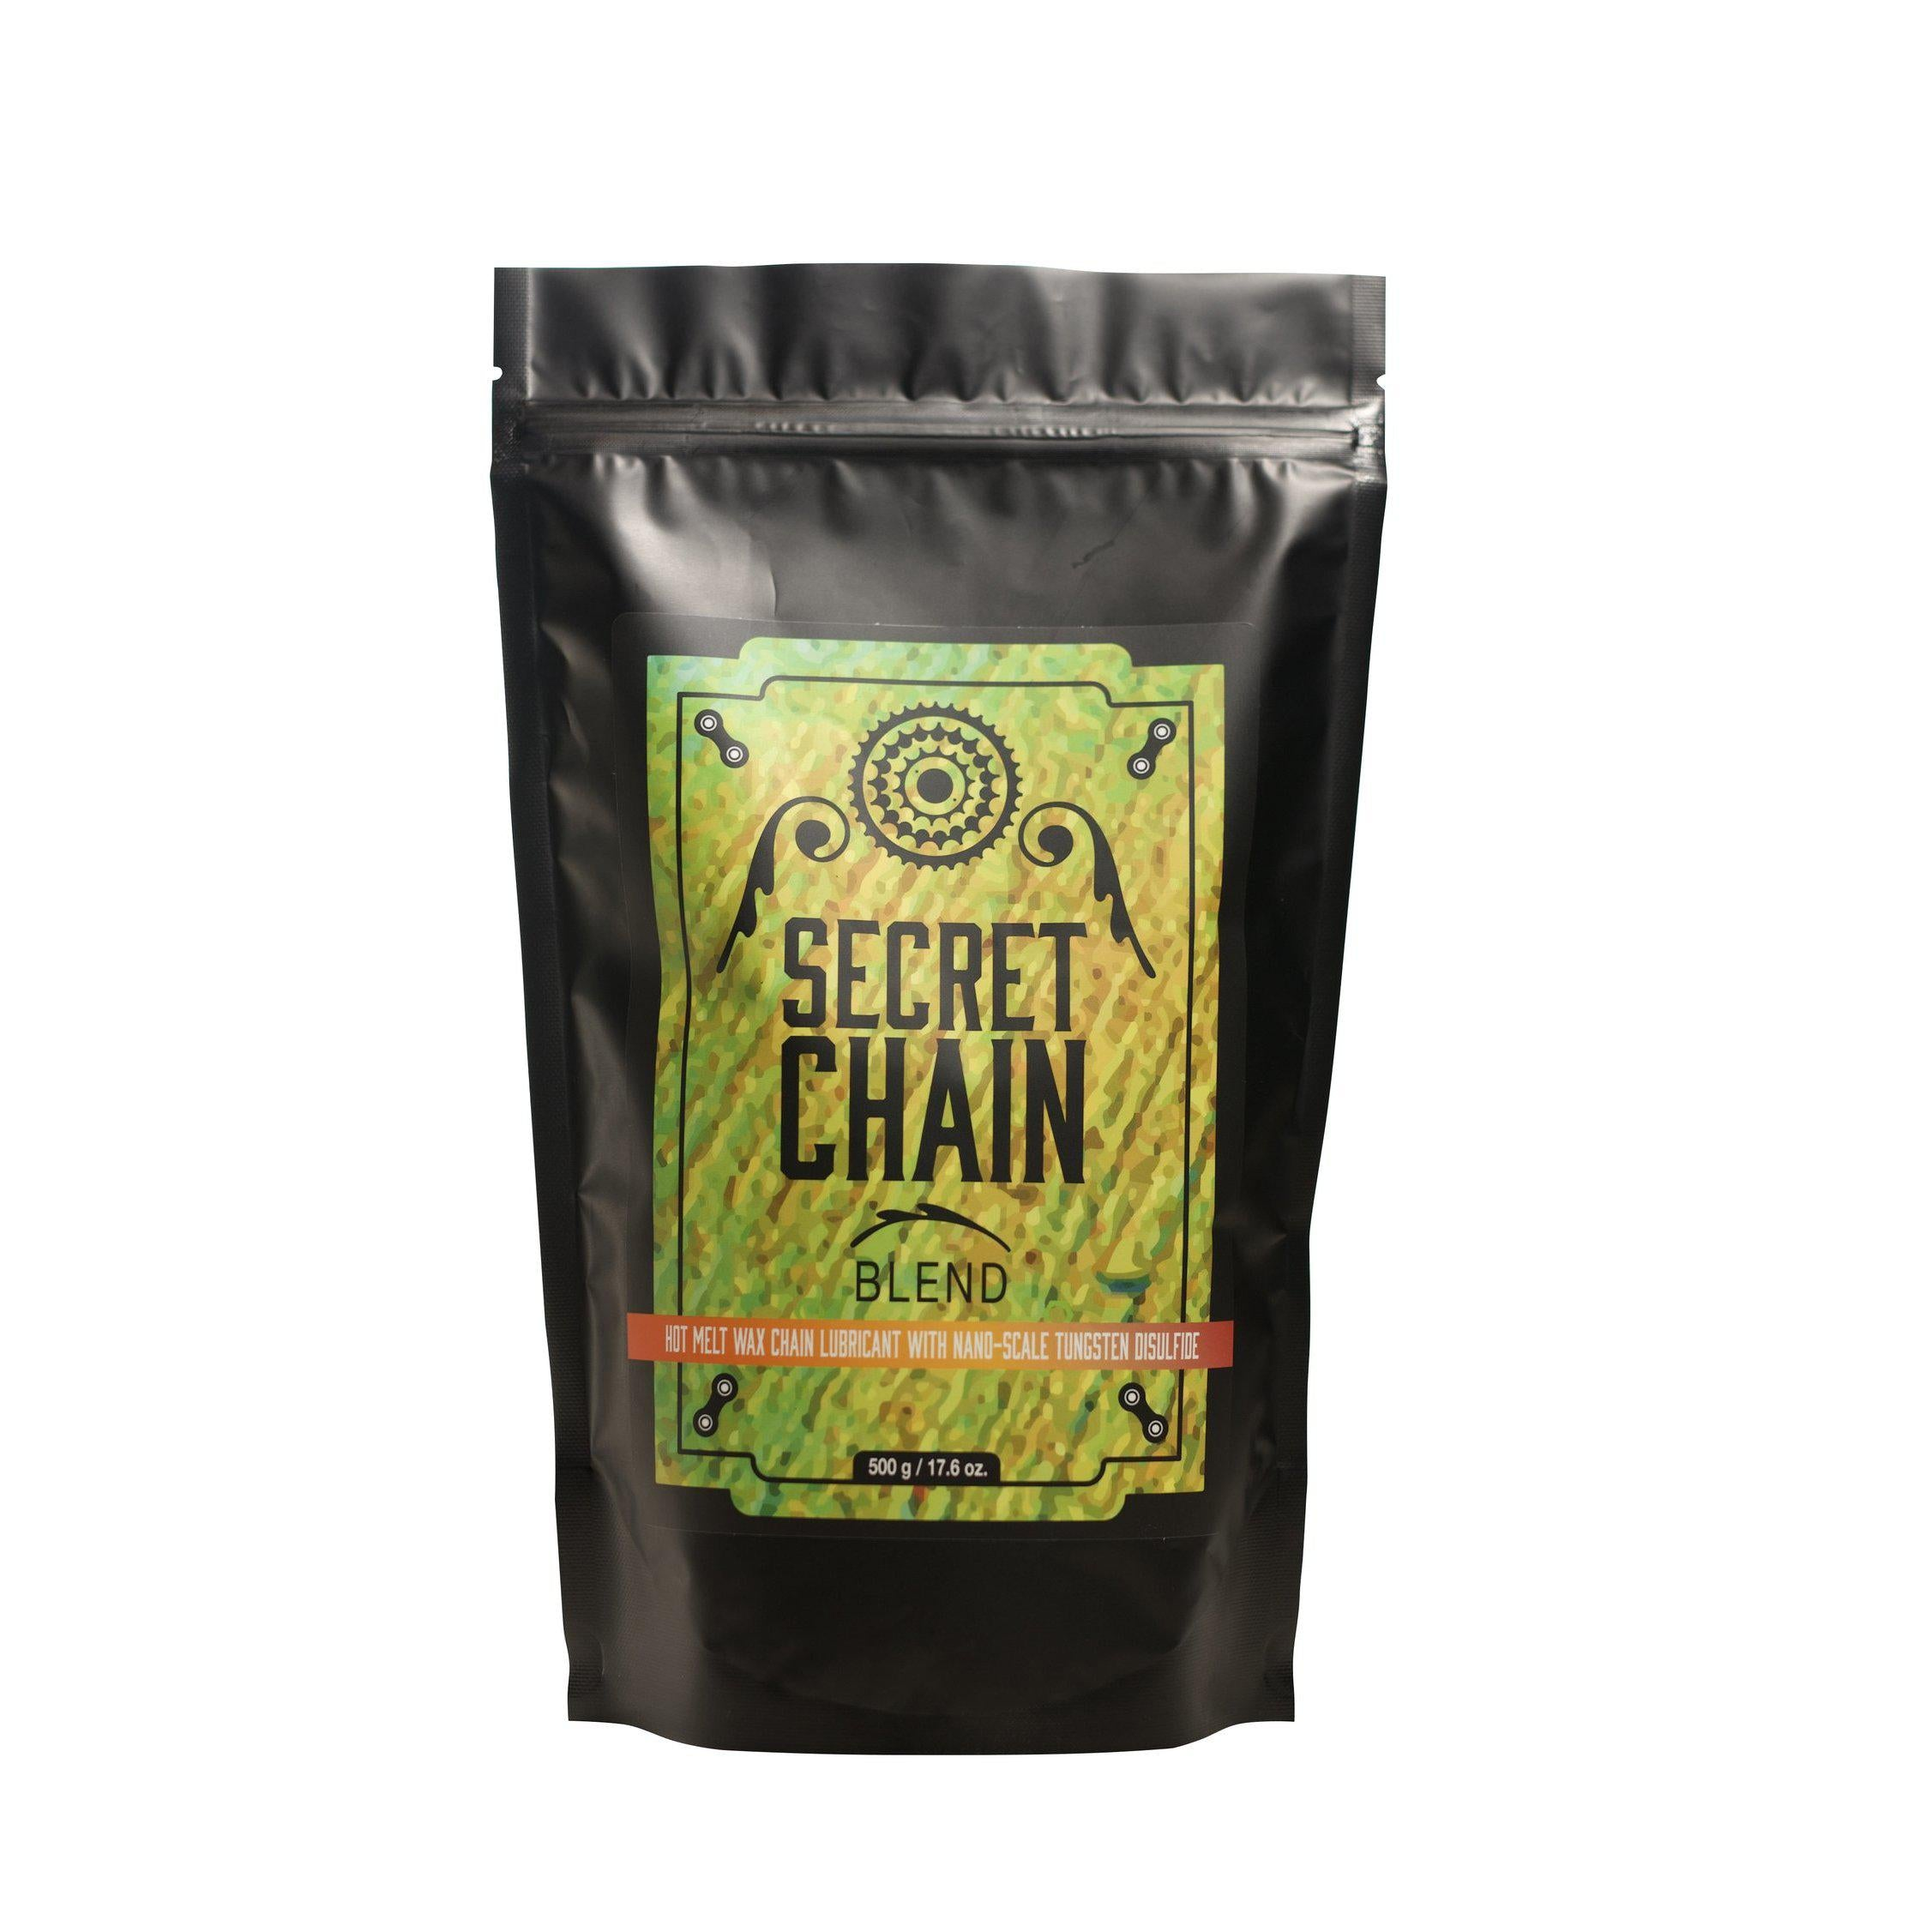 Silca-Silca Secret Chain Blend Hot Melt Wax - 500g-Pouch-500g-SIAMAC016ASY0100-saddleback-elite-performance-cycling